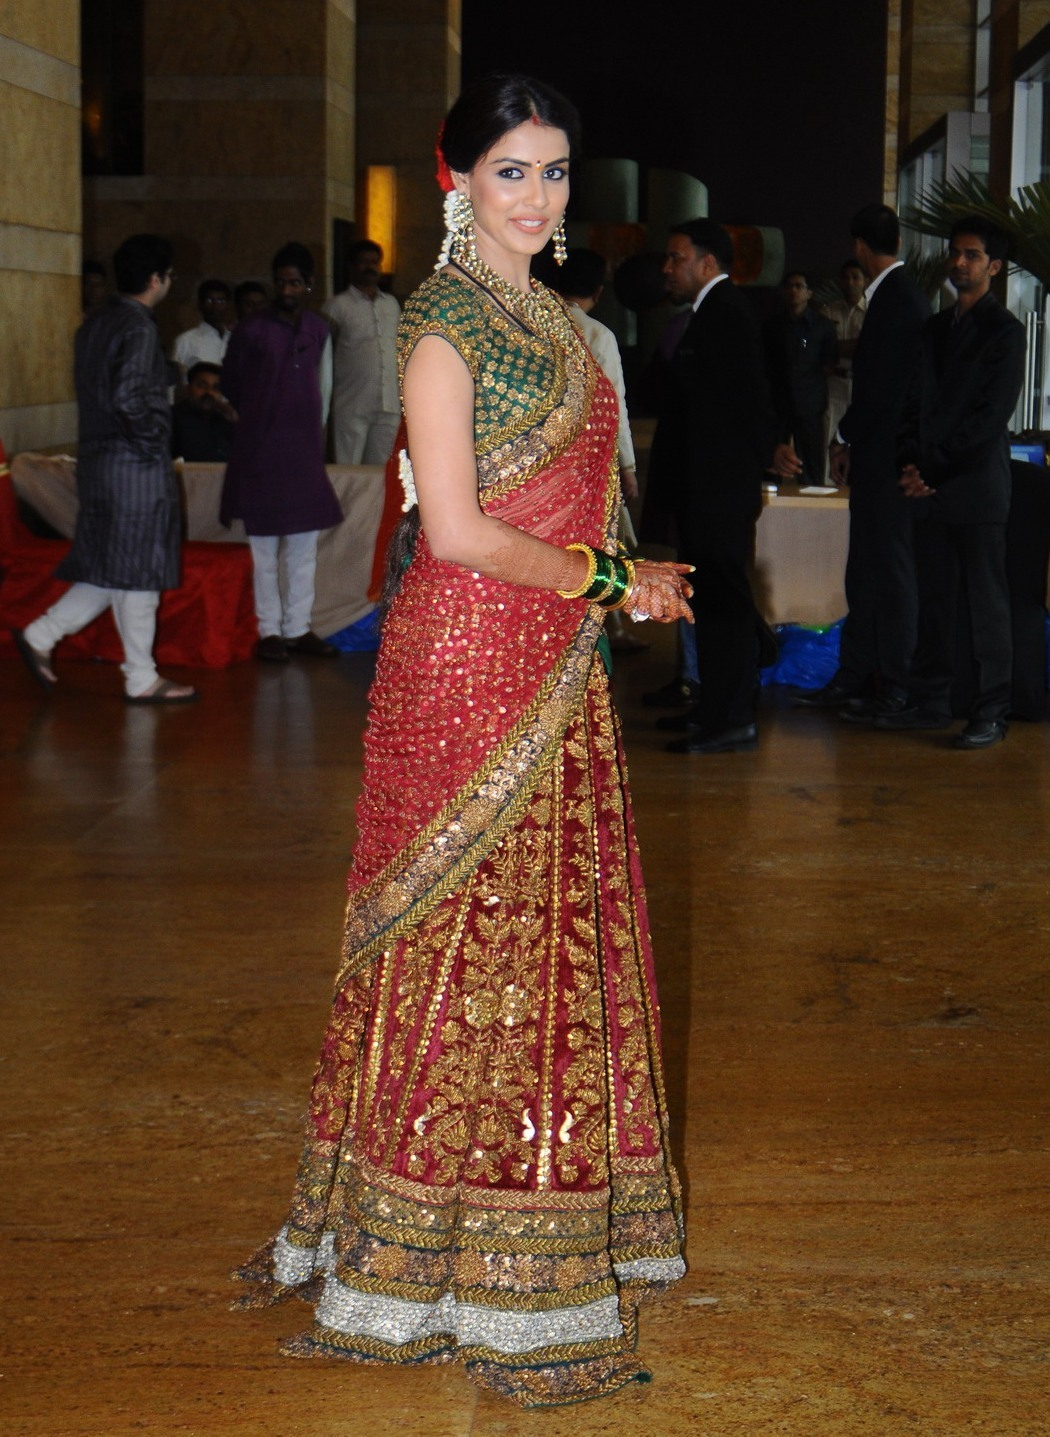 Genelia Deshmukh At The Wedding Ceremony Of Dheeraj And Honey Bhagnani In Mumbai